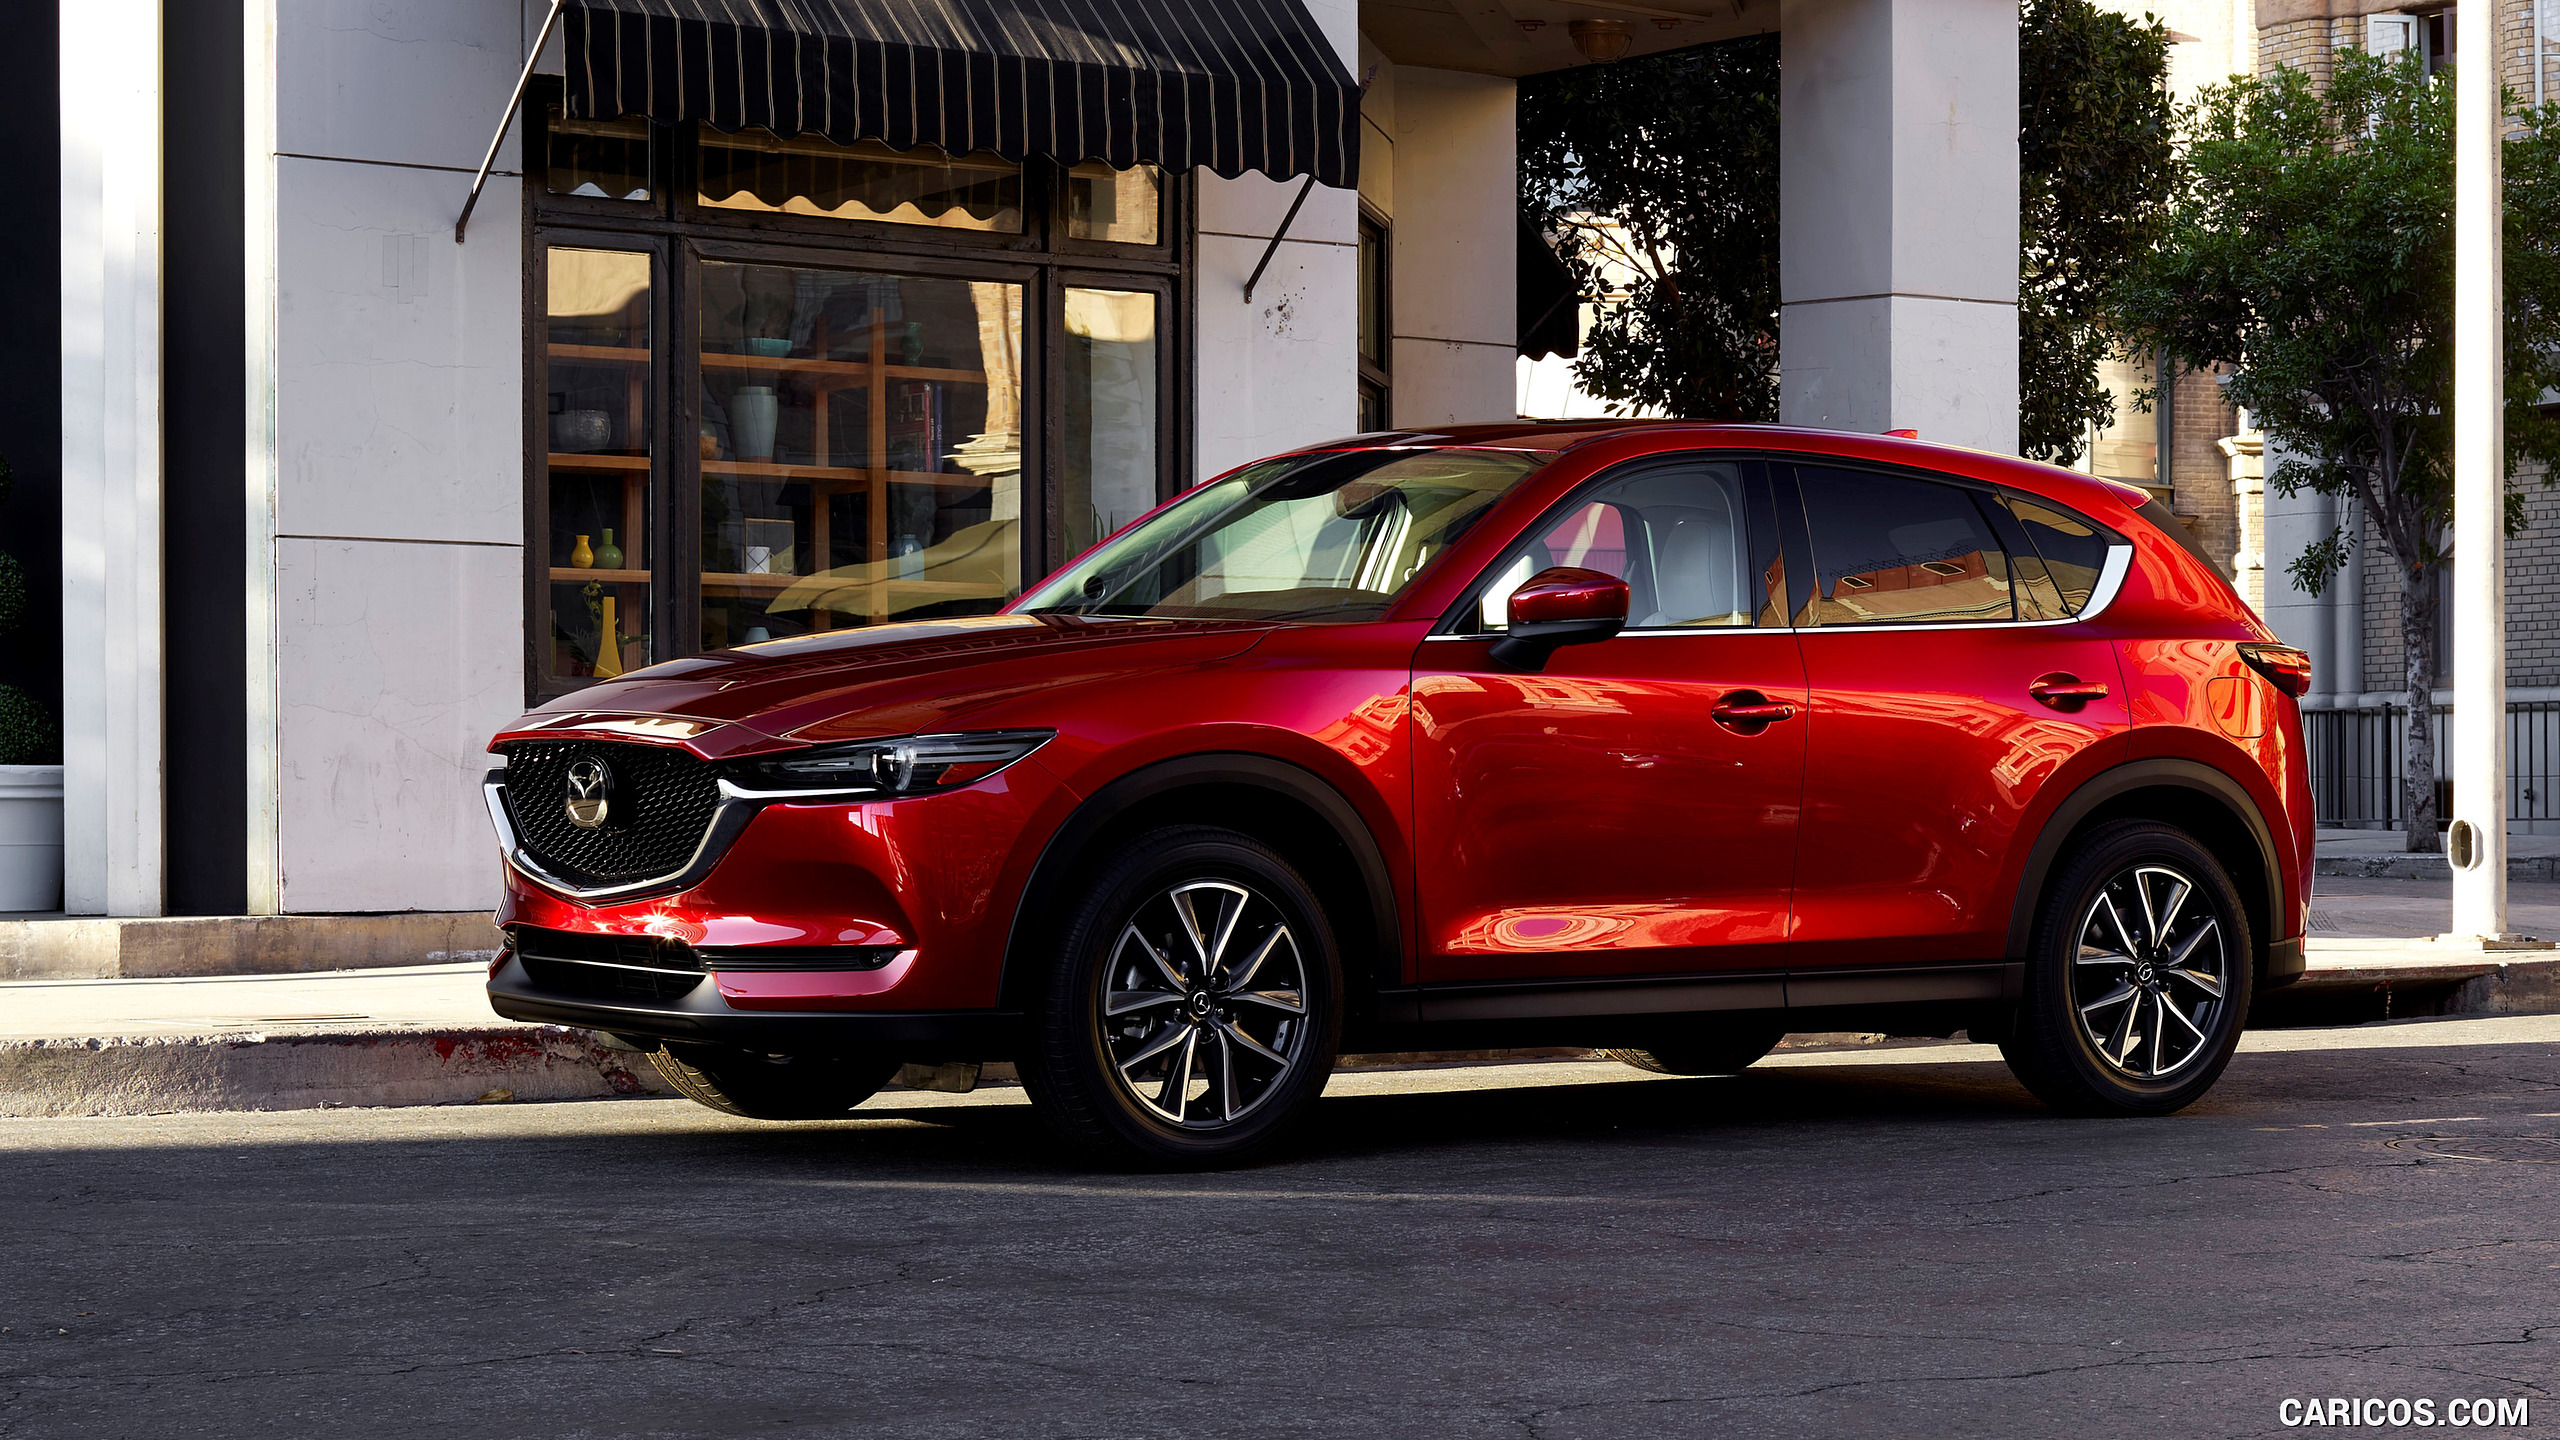 2560x1440 - Mazda CX-5 Wallpapers 18